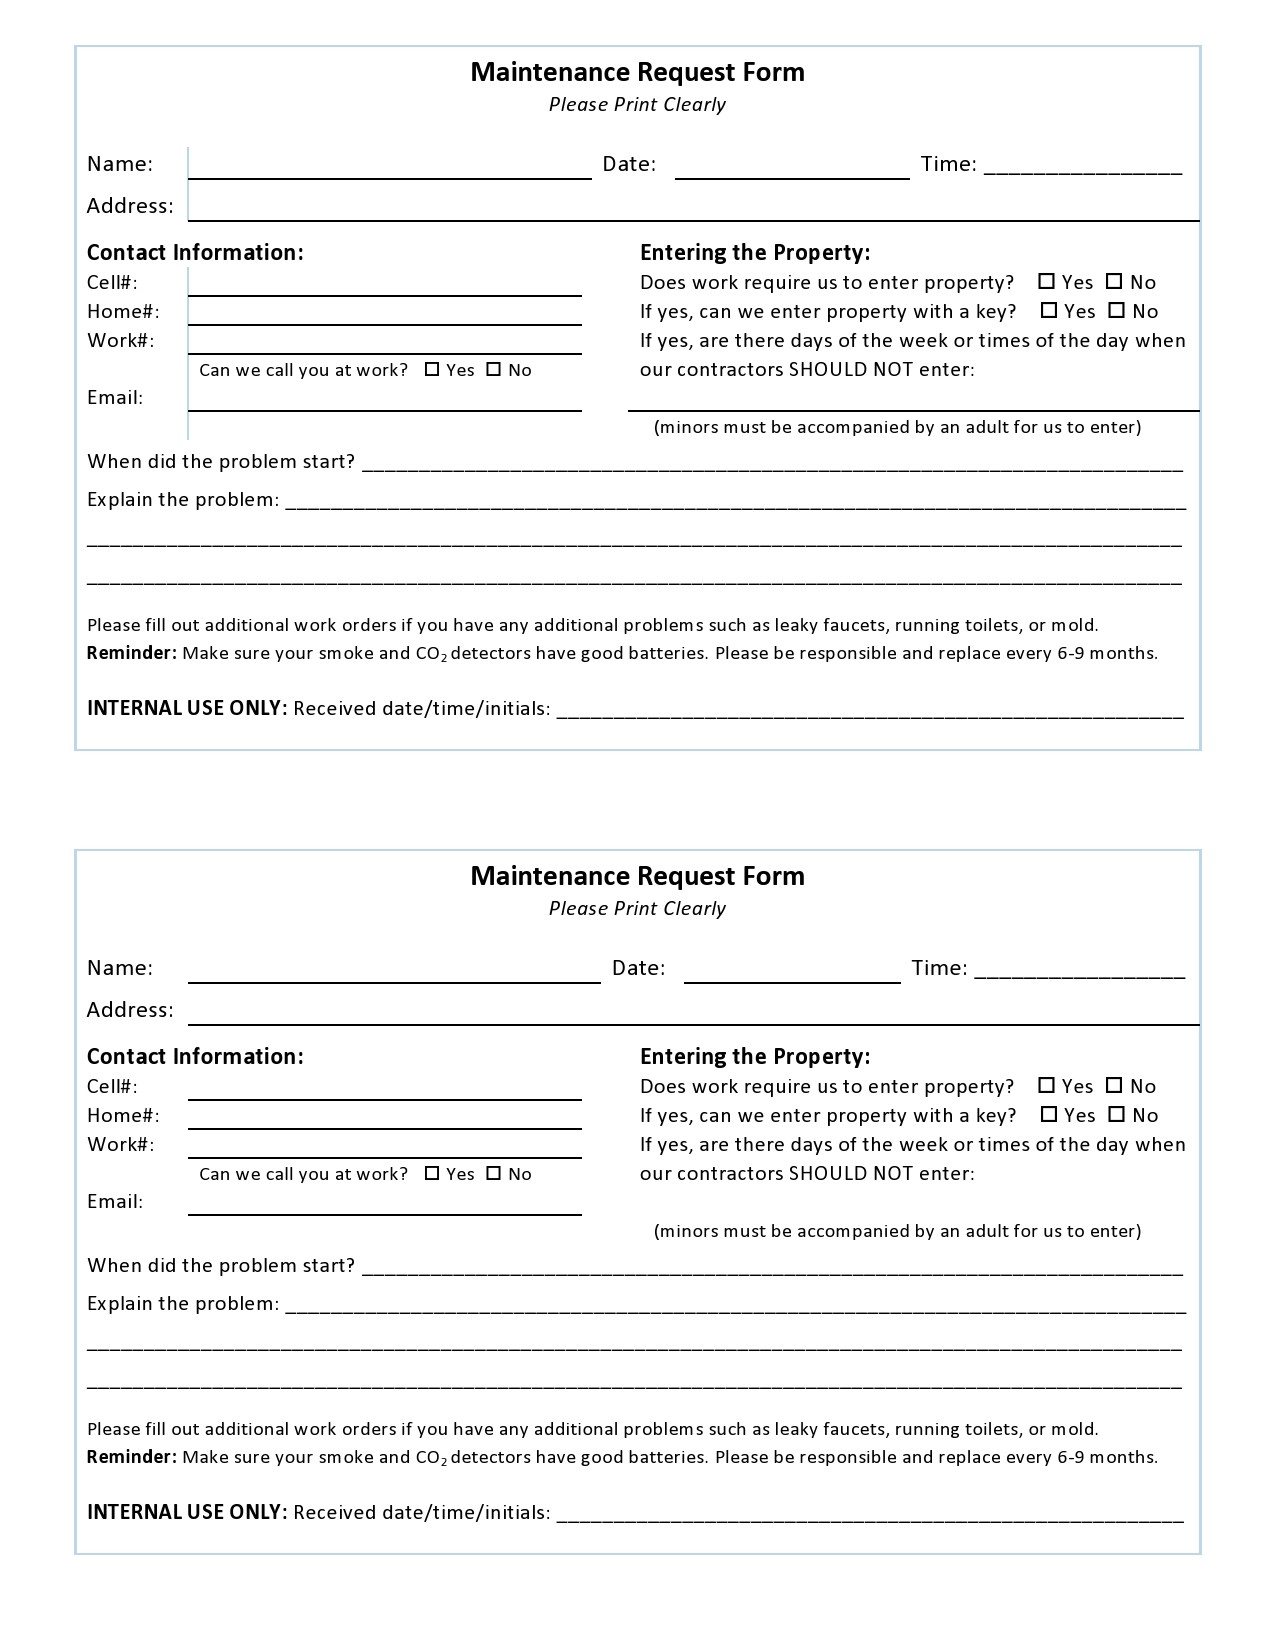 Free maintenance request form 22